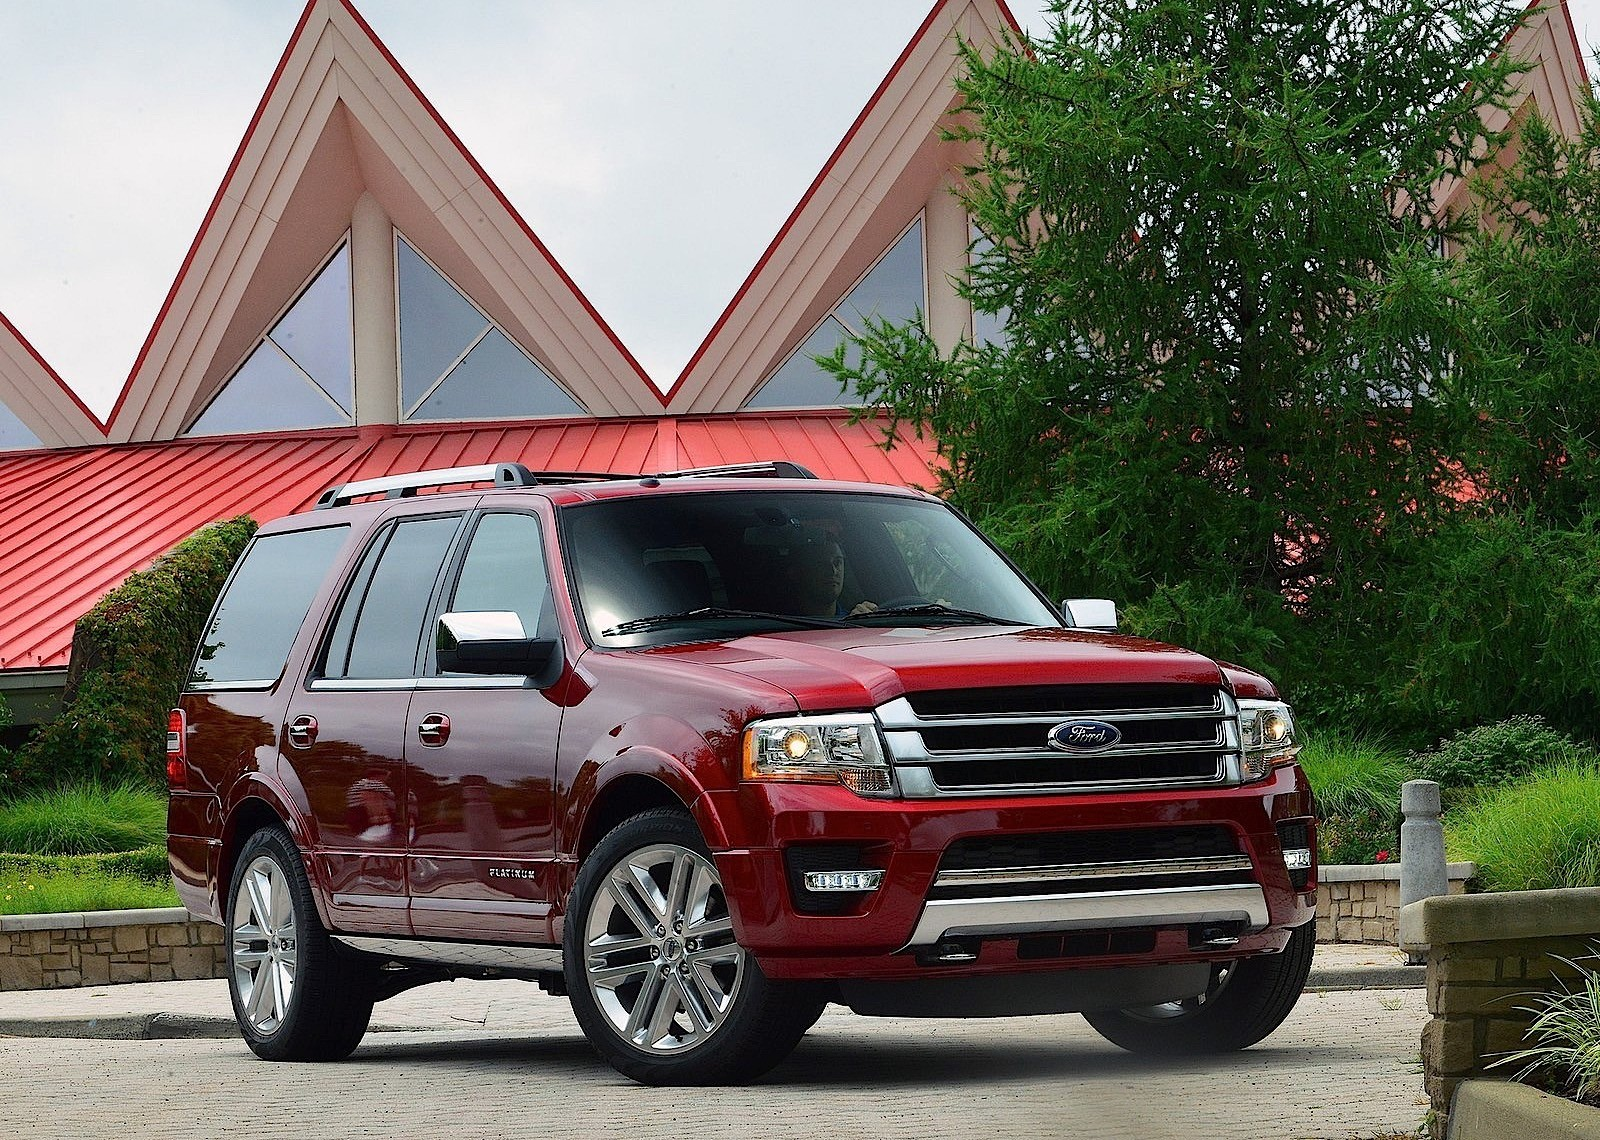 Expedition Towing Capacity >> FORD Expedition - 2014, 2015, 2016, 2017 - autoevolution